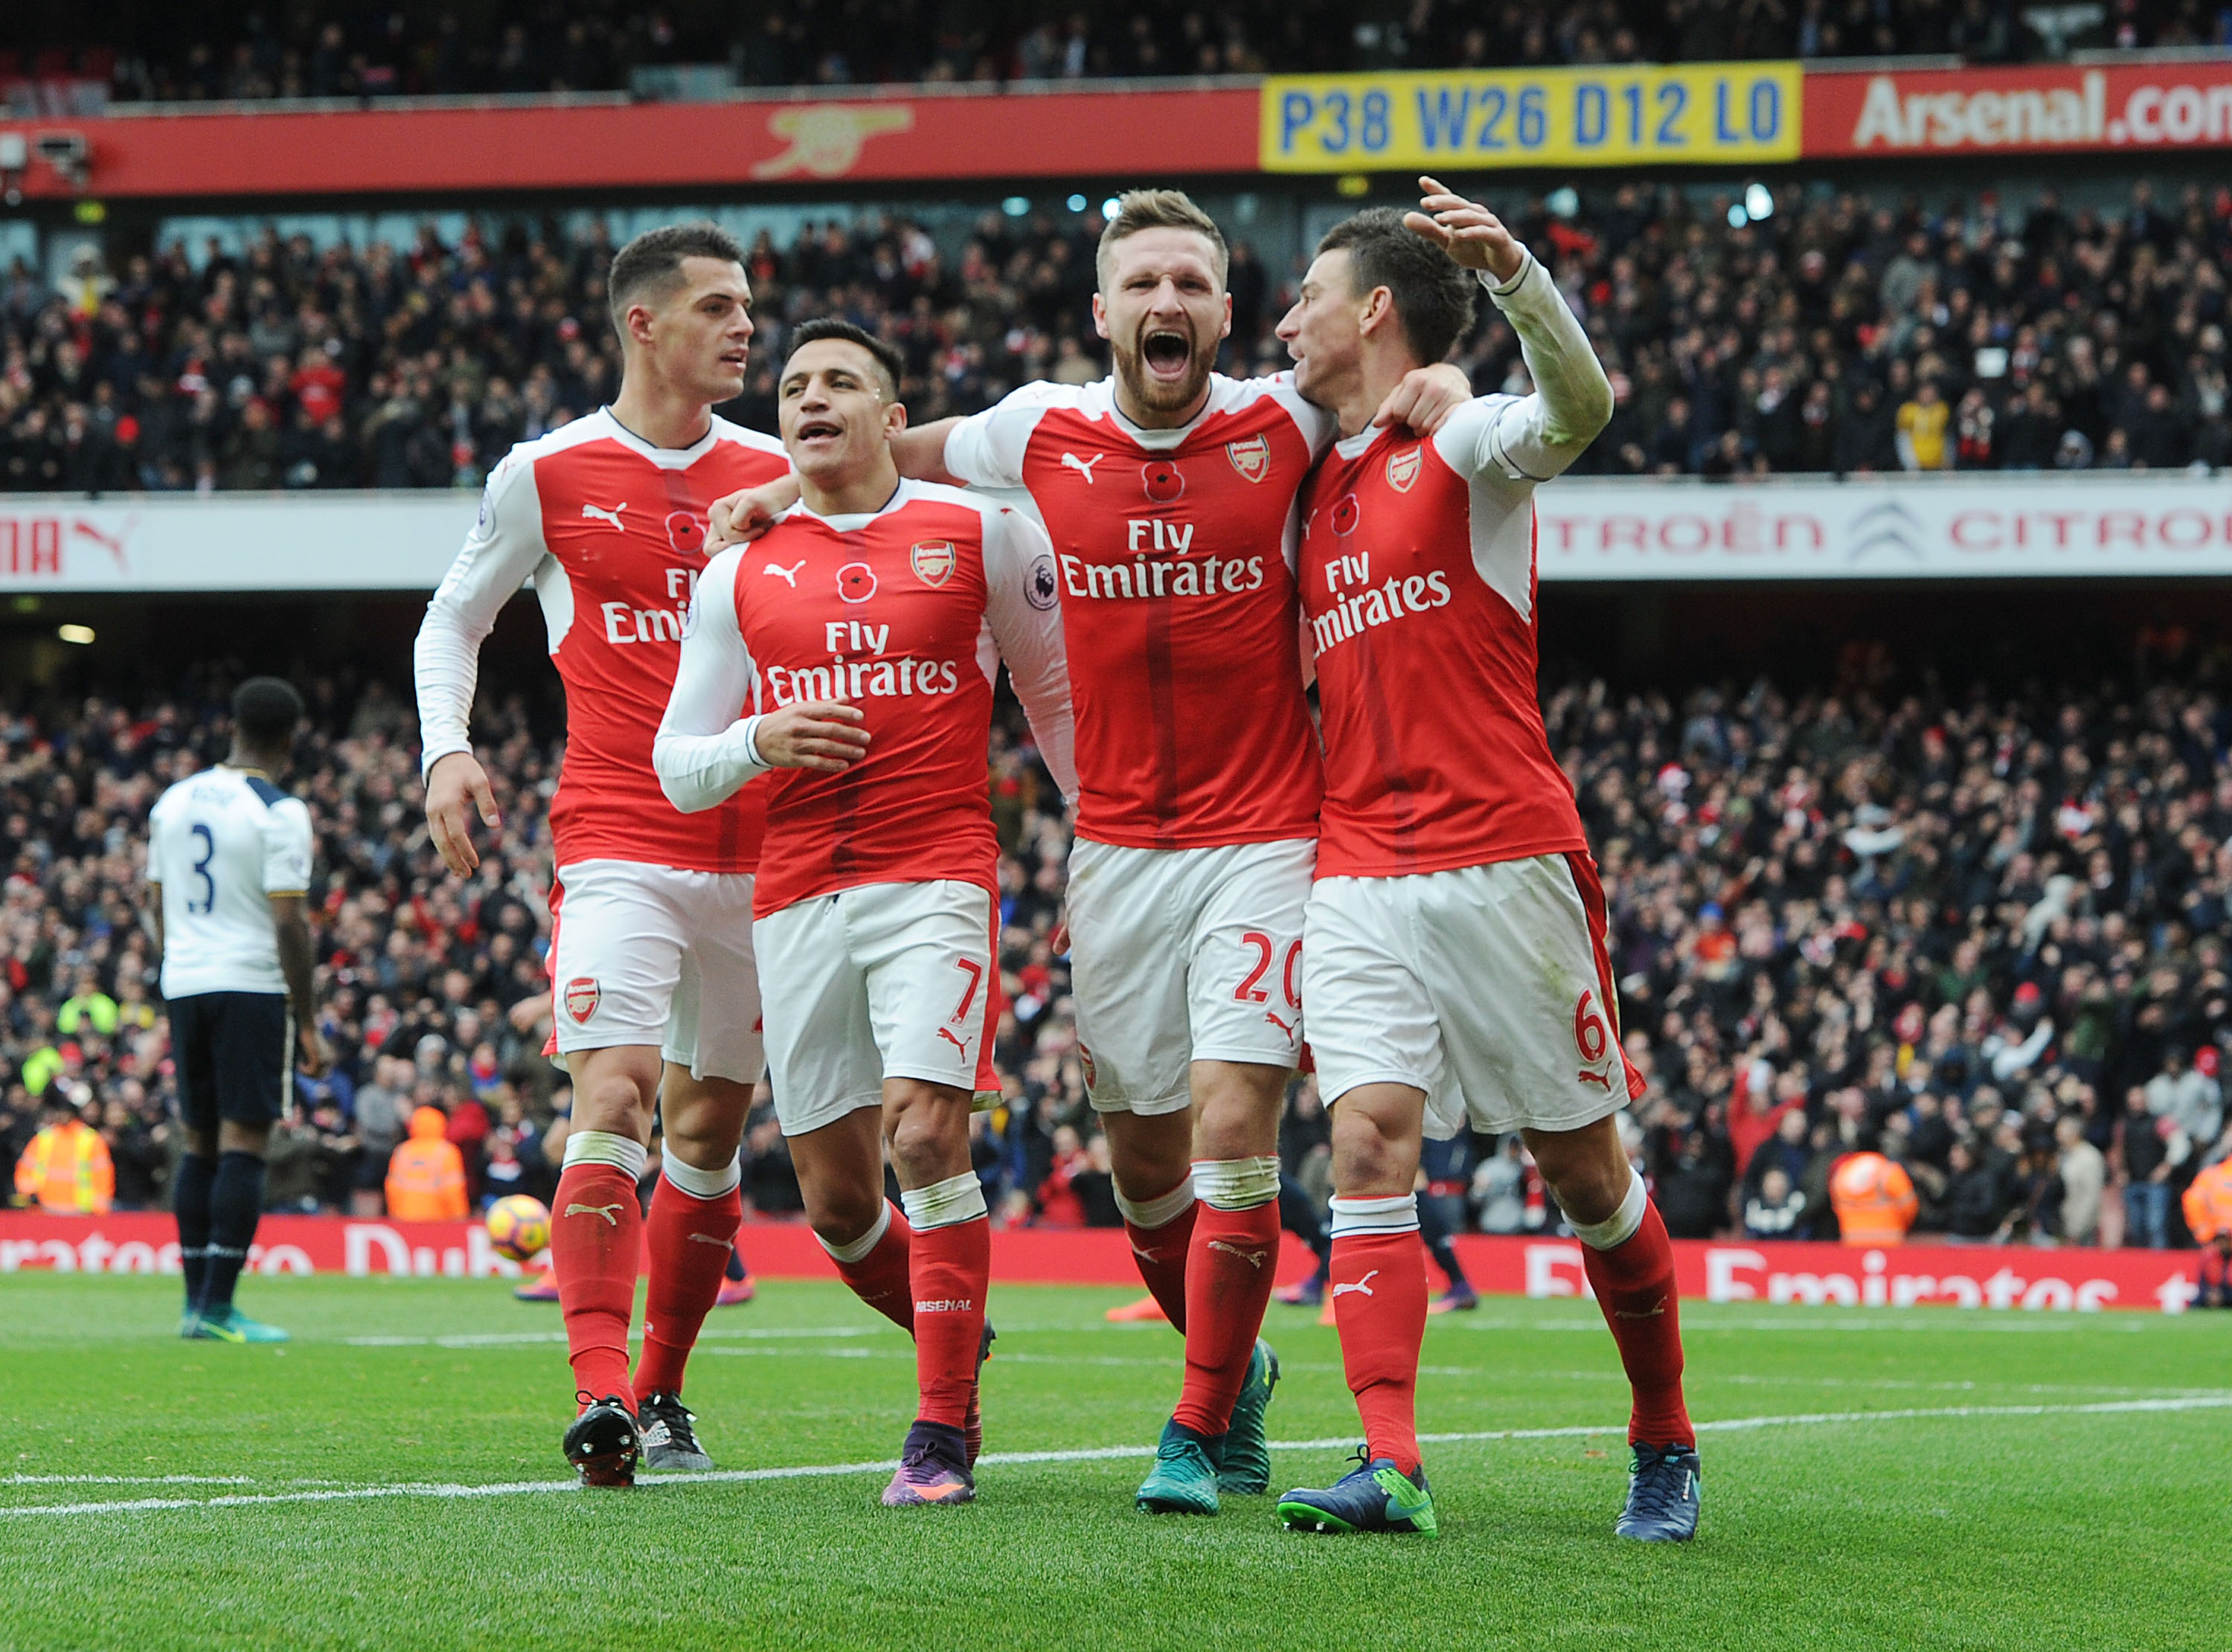 Arsenal: Arsenal Vs West Ham United: 3 Crucial Things To Watch For